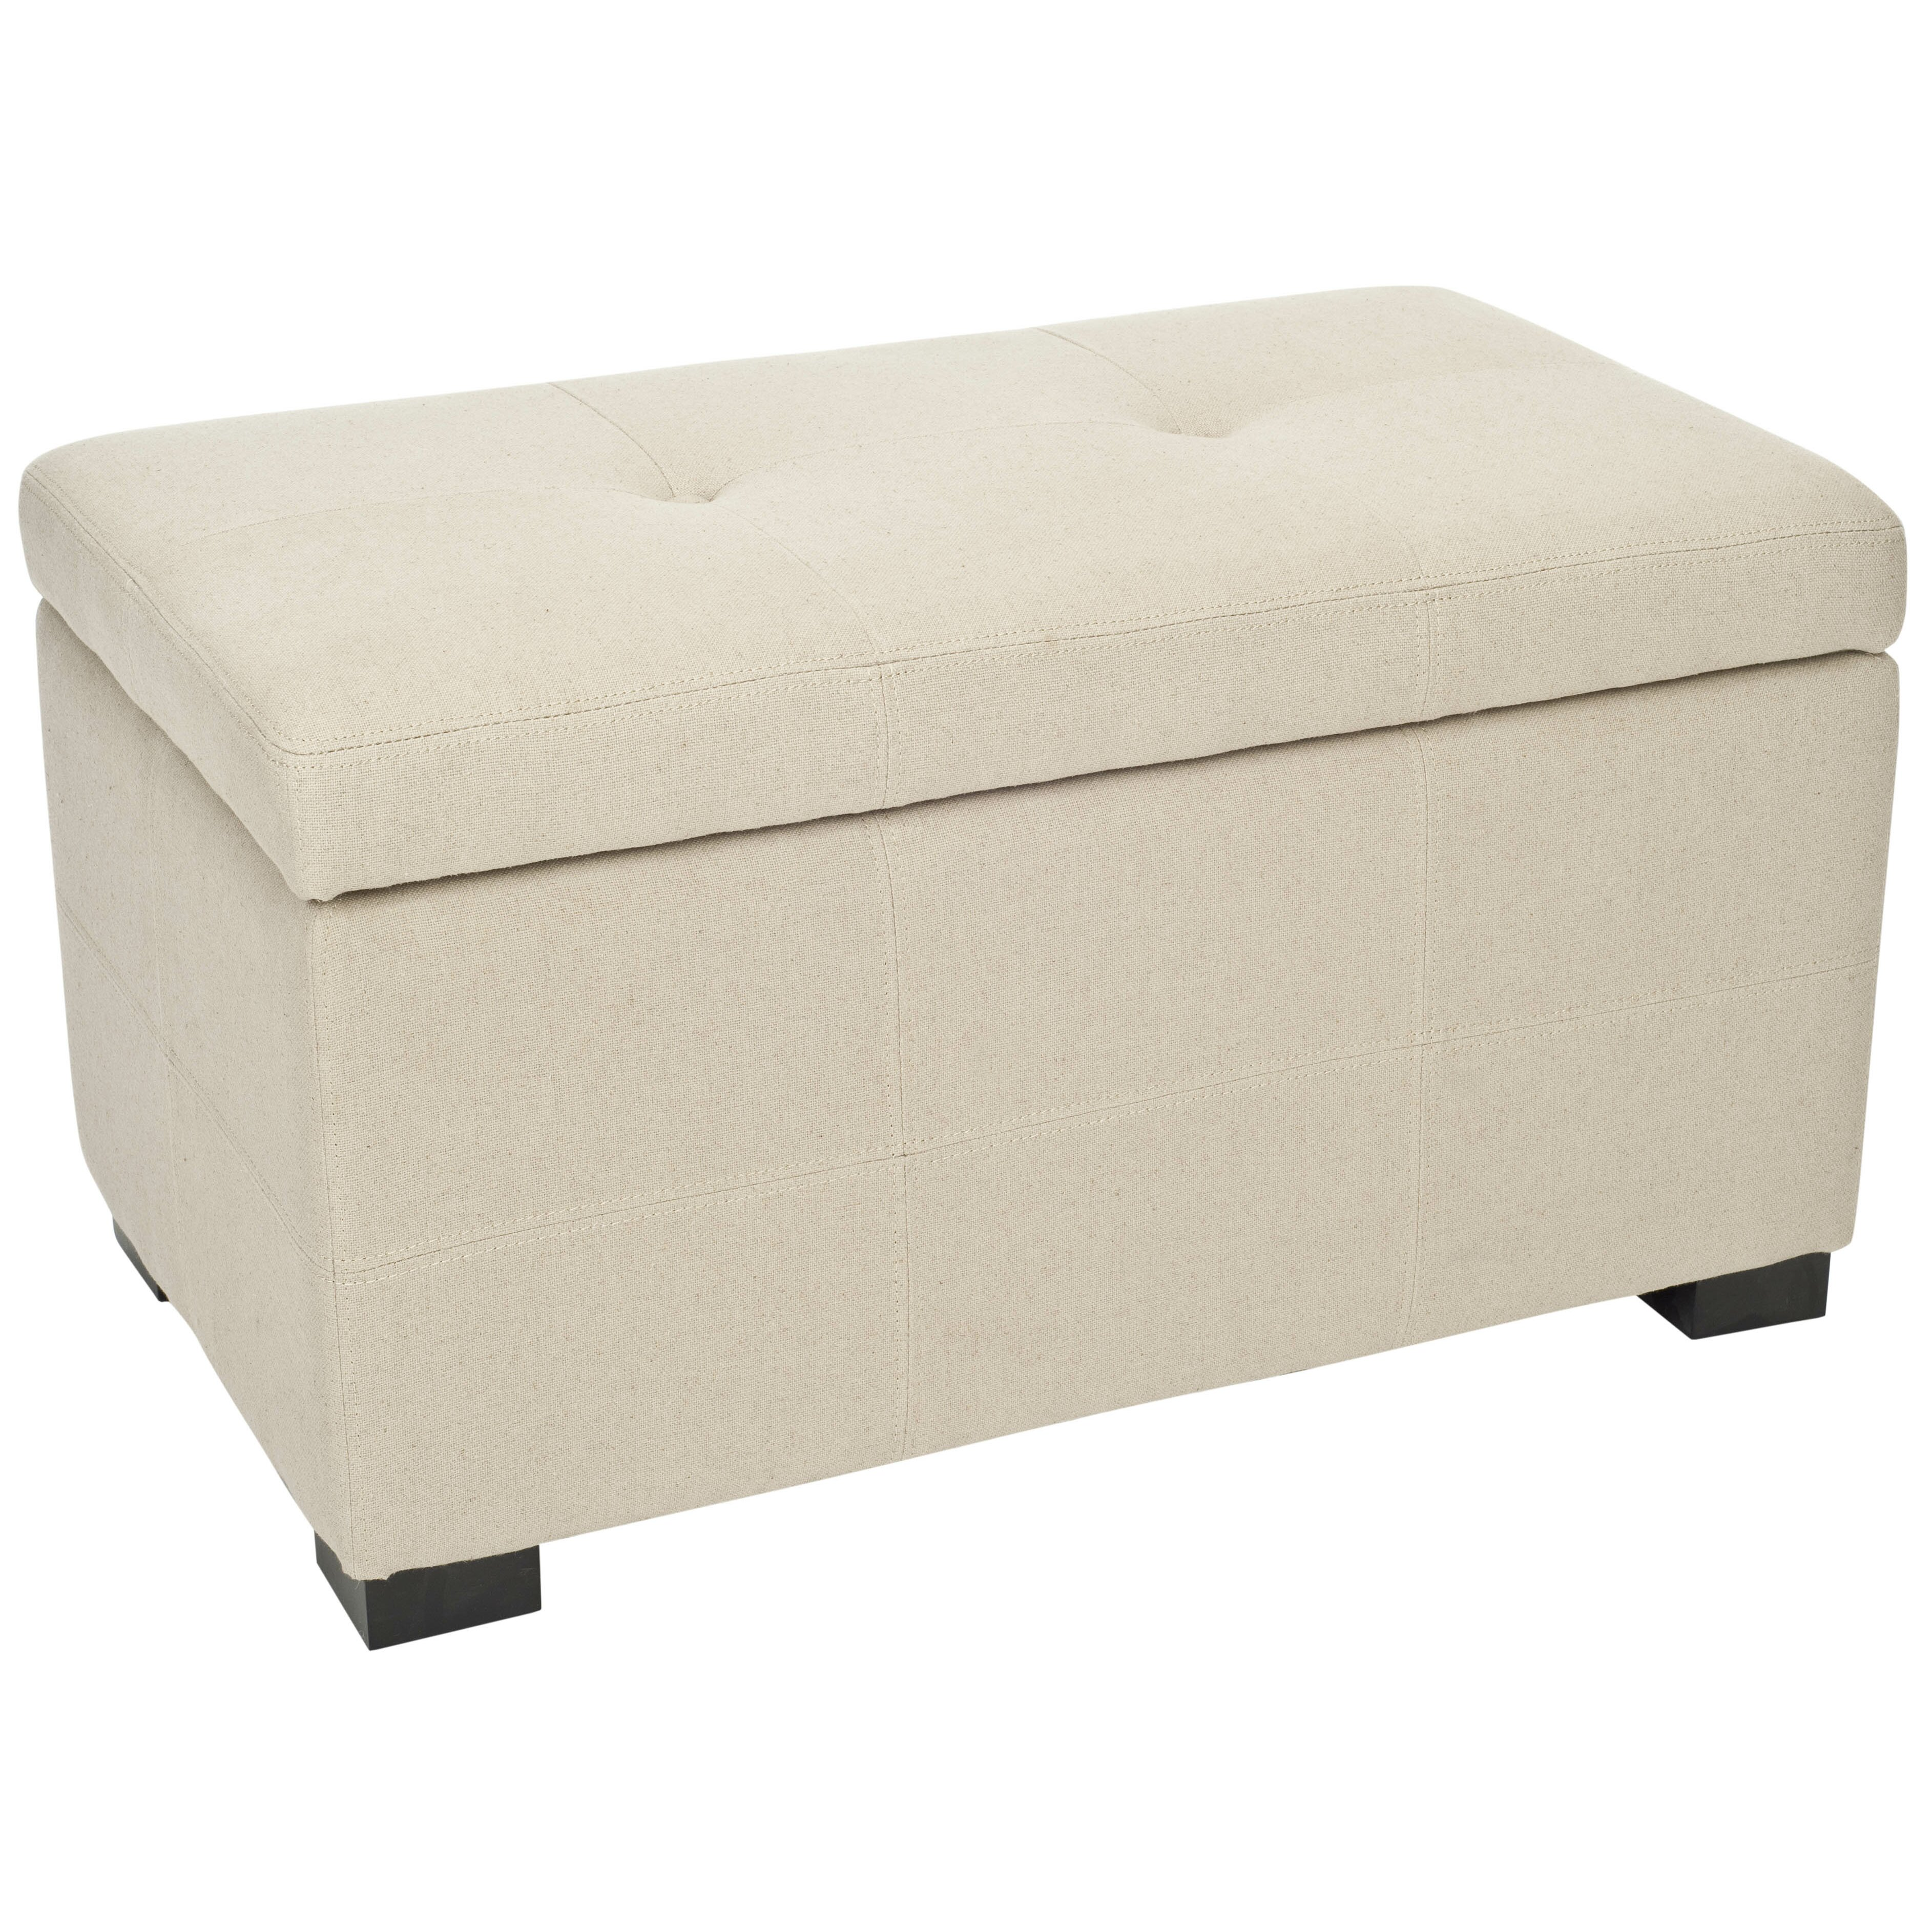 Ottomans For Bedroom Bedroom Benches Youll Love Wayfair